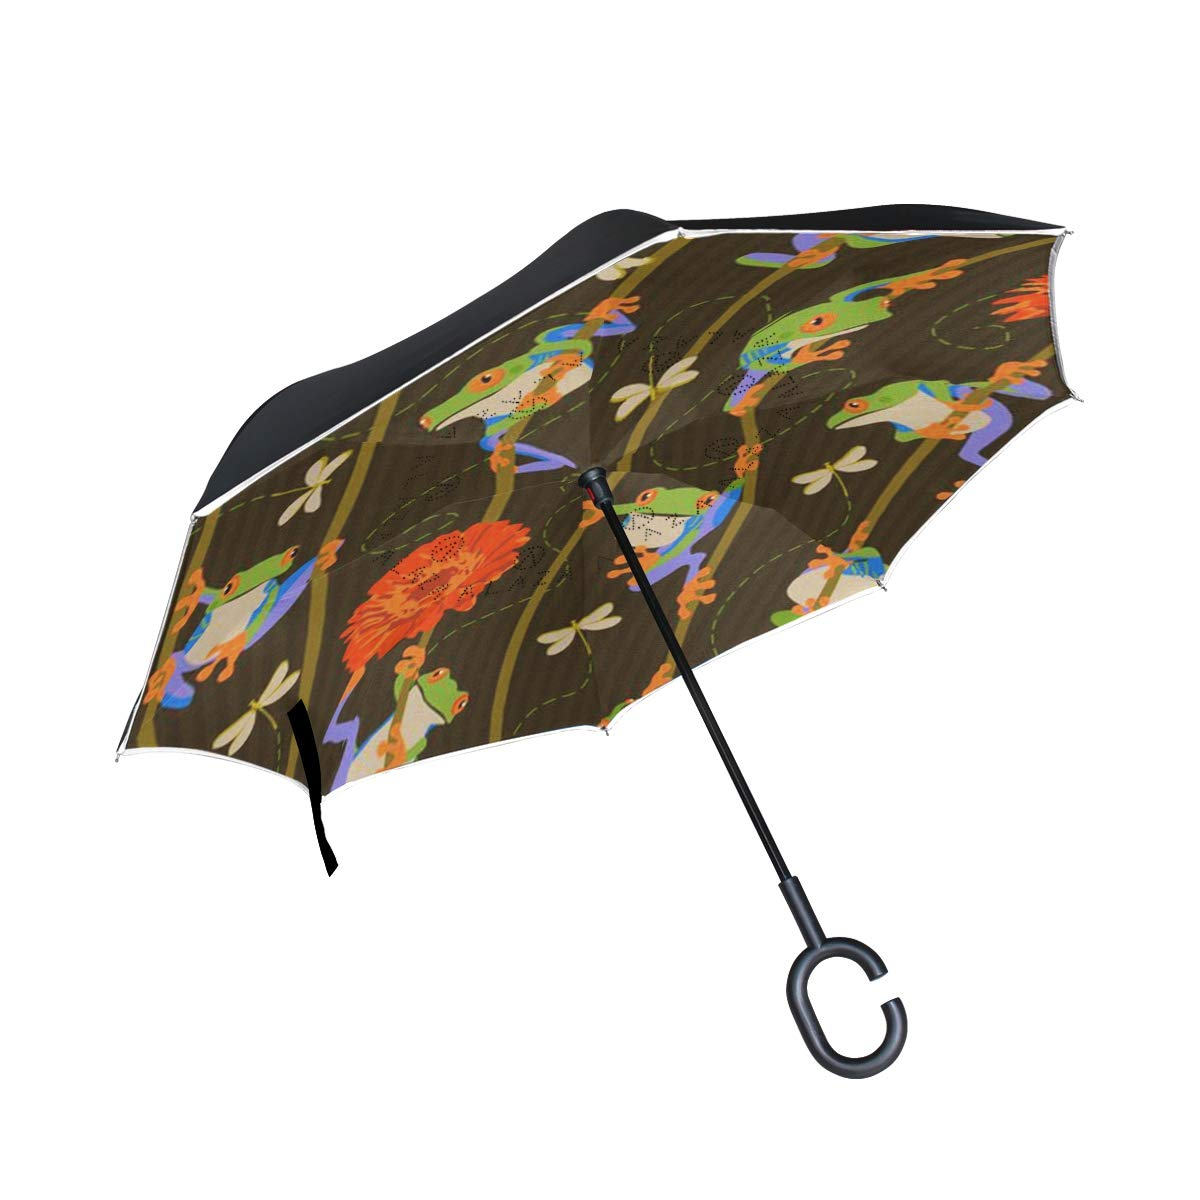 Gaz X Frog Fun Stripe Inverted Umbrella Double Layer Windproof UV Protection Large Upside Down Straight Umbrella for Car Rain with C-Shaped Handle